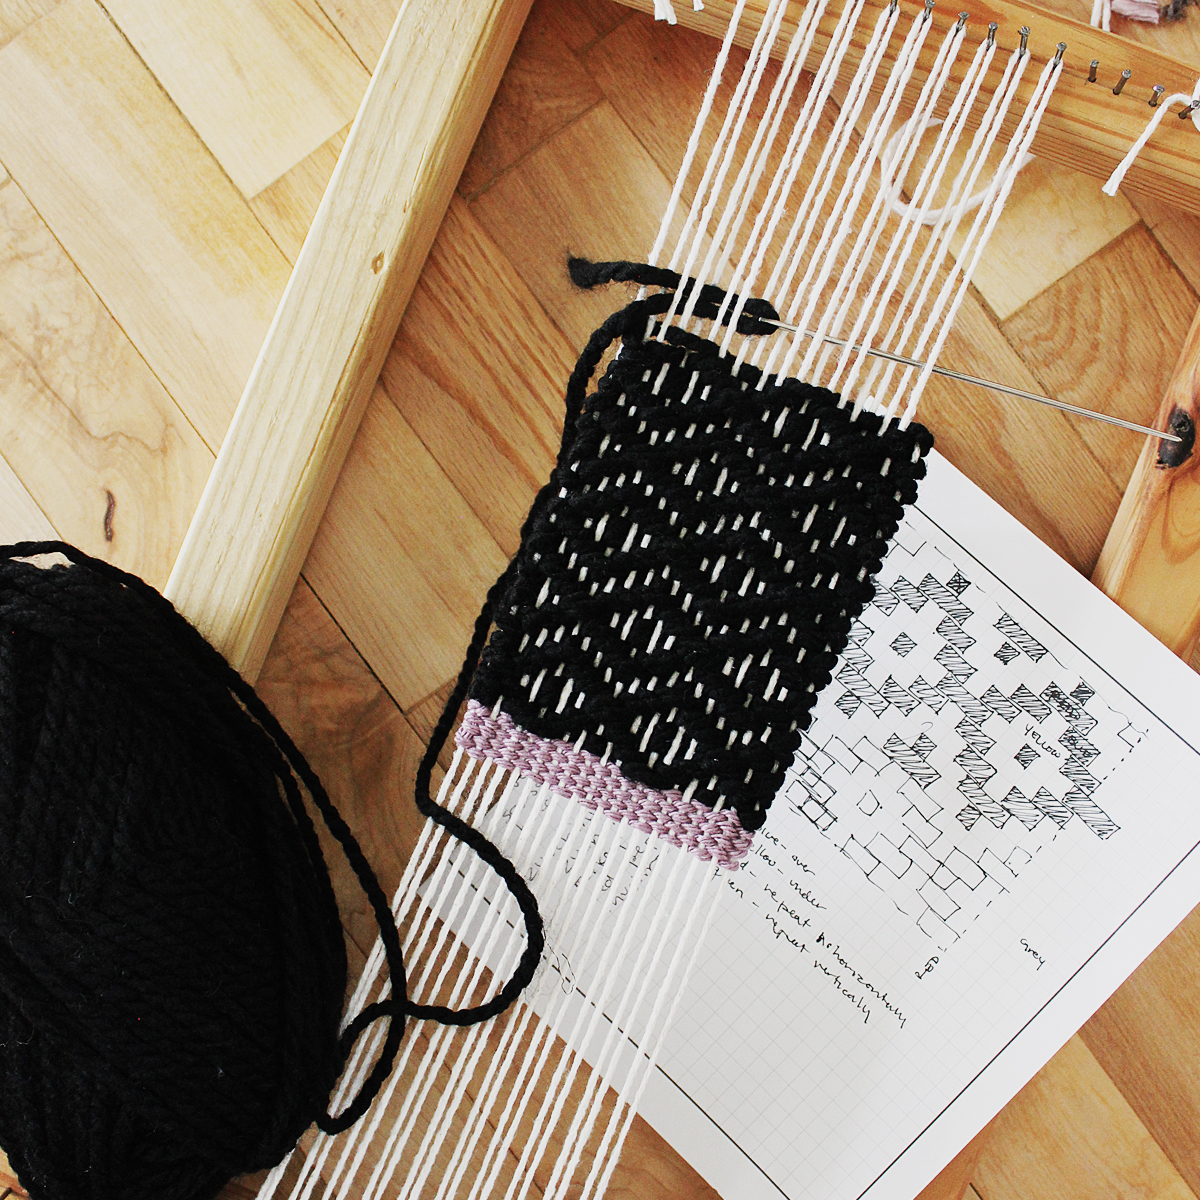 twill weaving how to weave on a loom